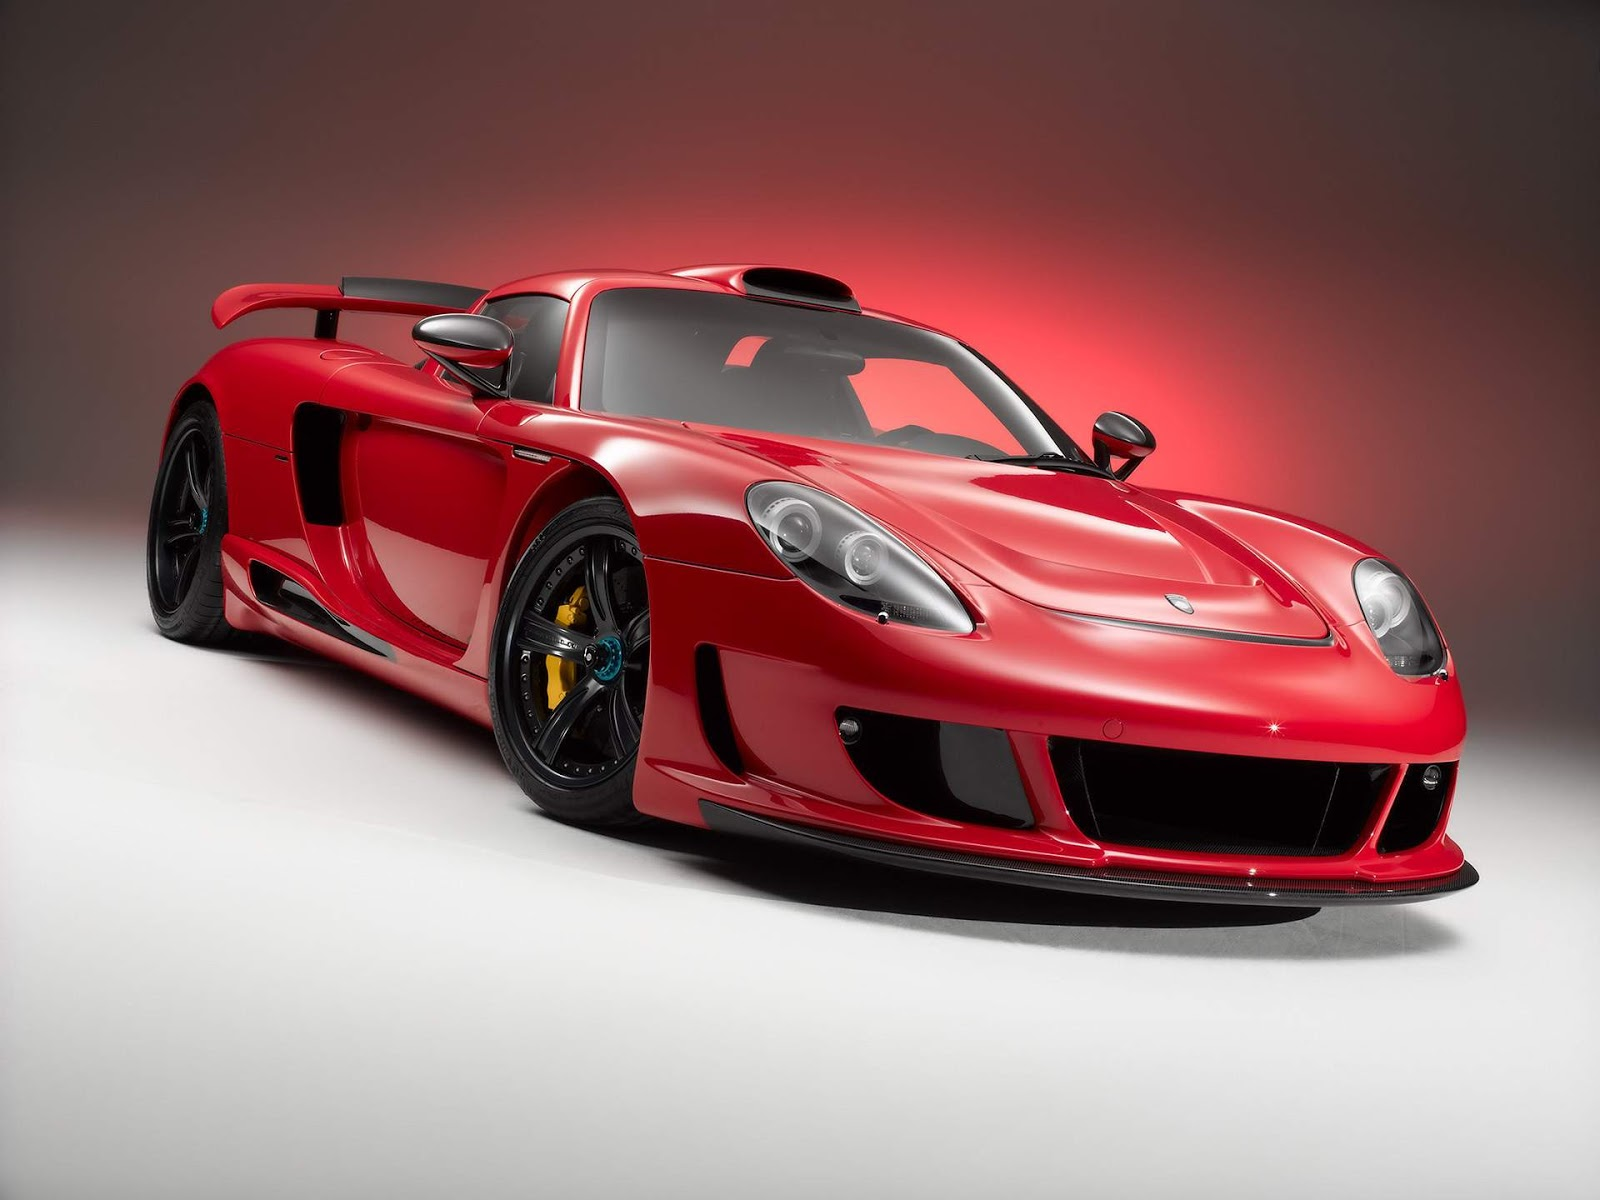 Koenigsegg Red Concept Car HD Wallpaper get it now!